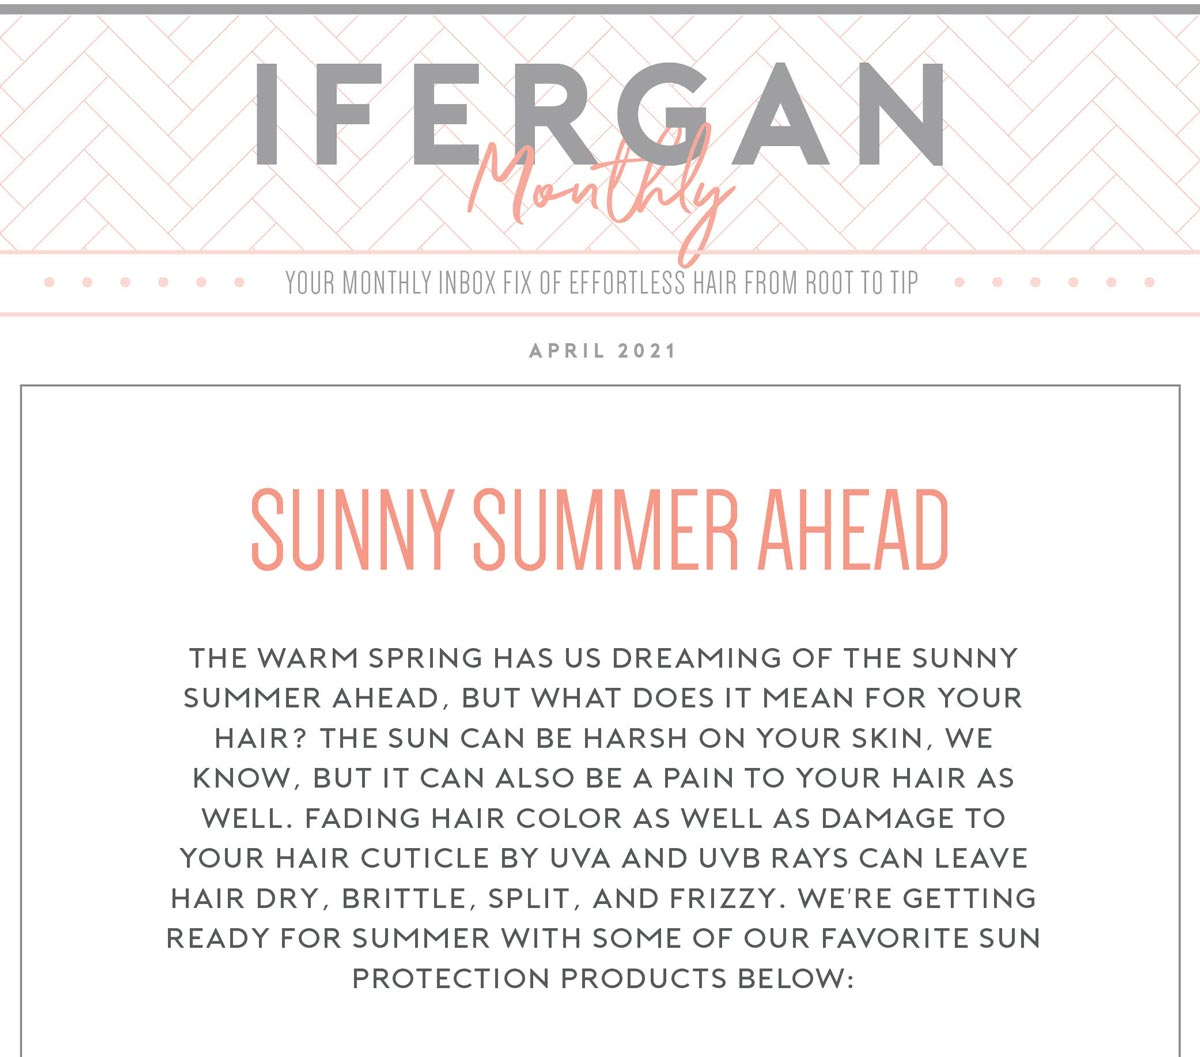 Charles Ifergan Monthly - April 2021. Sunny Summer Ahead. The warm spring has us dreaming of the sunny summer ahead, but what does it mean for your hair? The sun can be harsh on your skin, we know, but it can also be a pain to your hair as well. Fading hair color as well as damage to your hair cuticle by UVA and UVB rays can leave hair dry, brittle, split, and frizzy. We're getting ready for summer with some of our favorite sun protection products below: